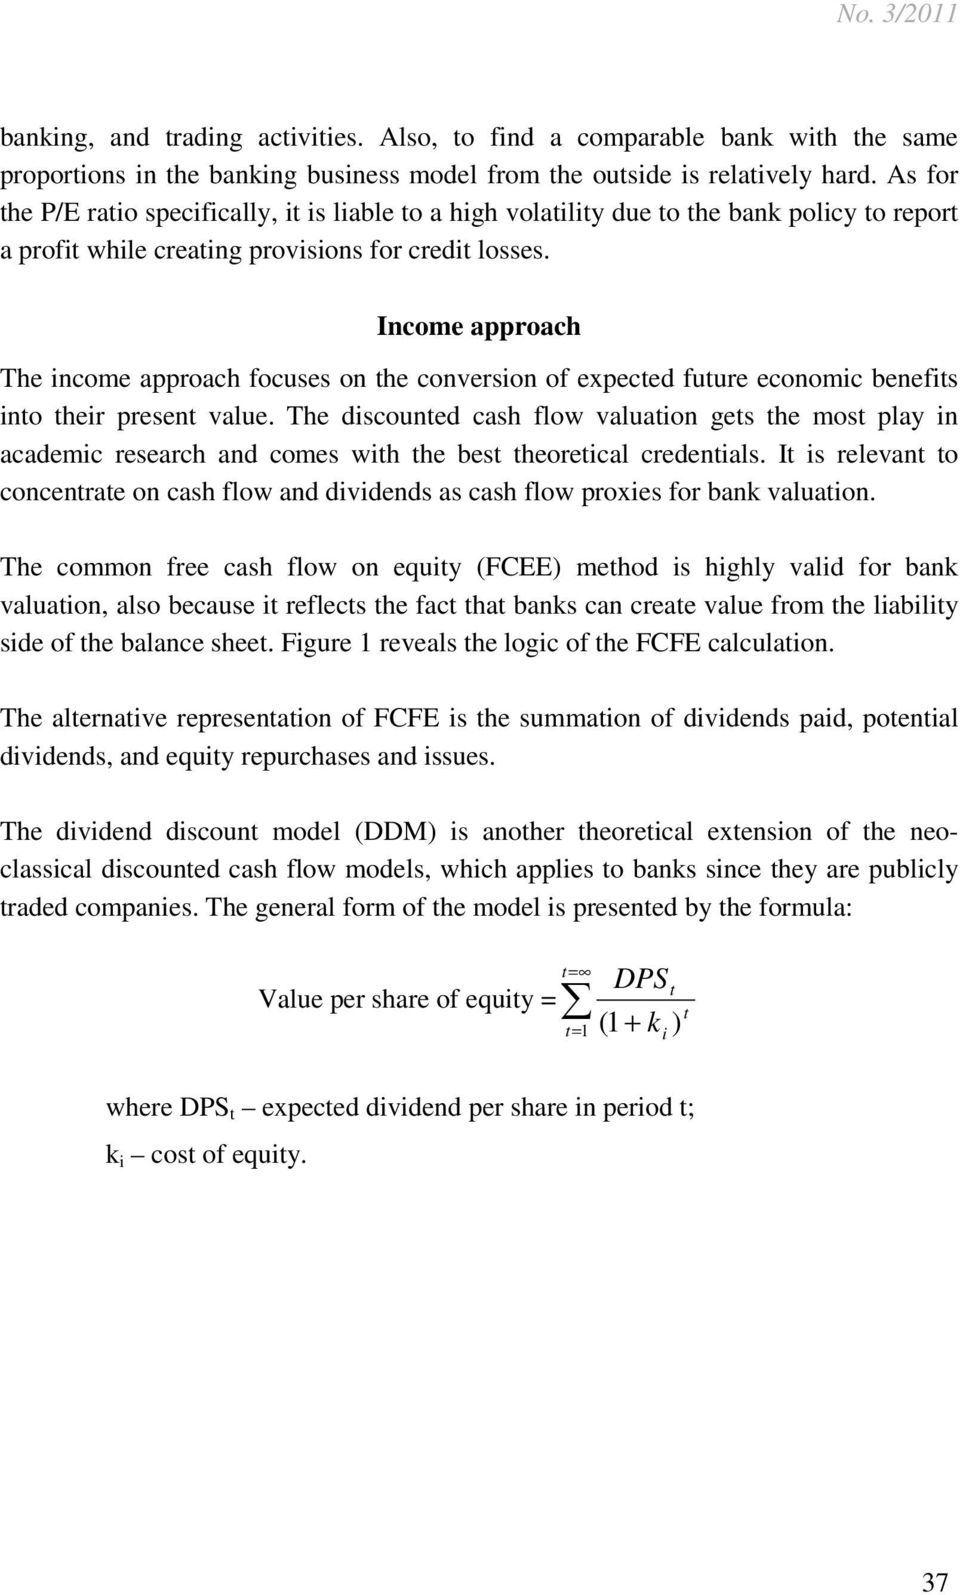 METHODS OF BANK VALUATION: A CRITICAL OVERVIEW - PDF